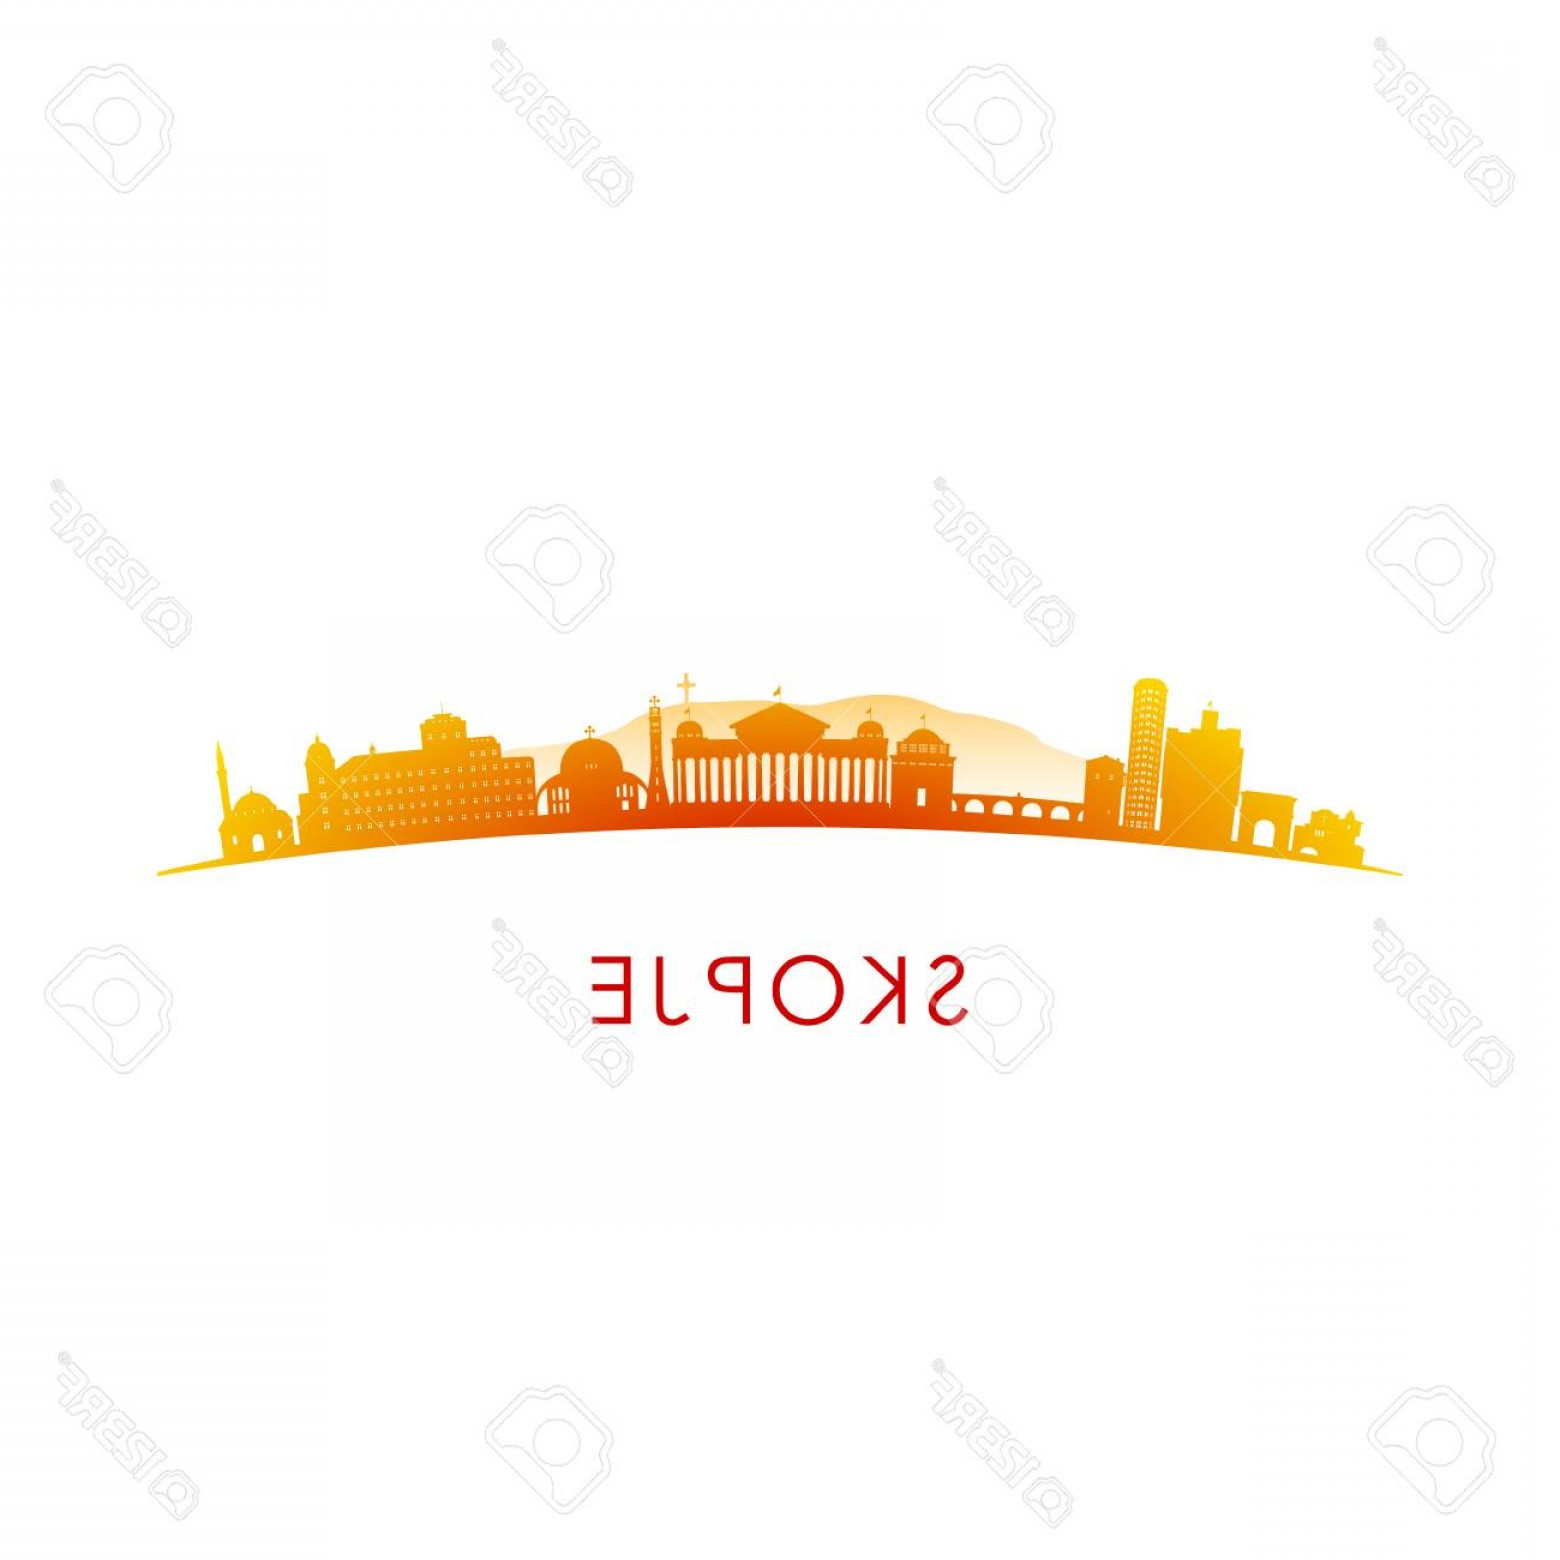 Wicked Boston Skyline Silhouette Vector: Photostock Vector Skopje Skyline Silhouette Vector Design Colorful Illustration